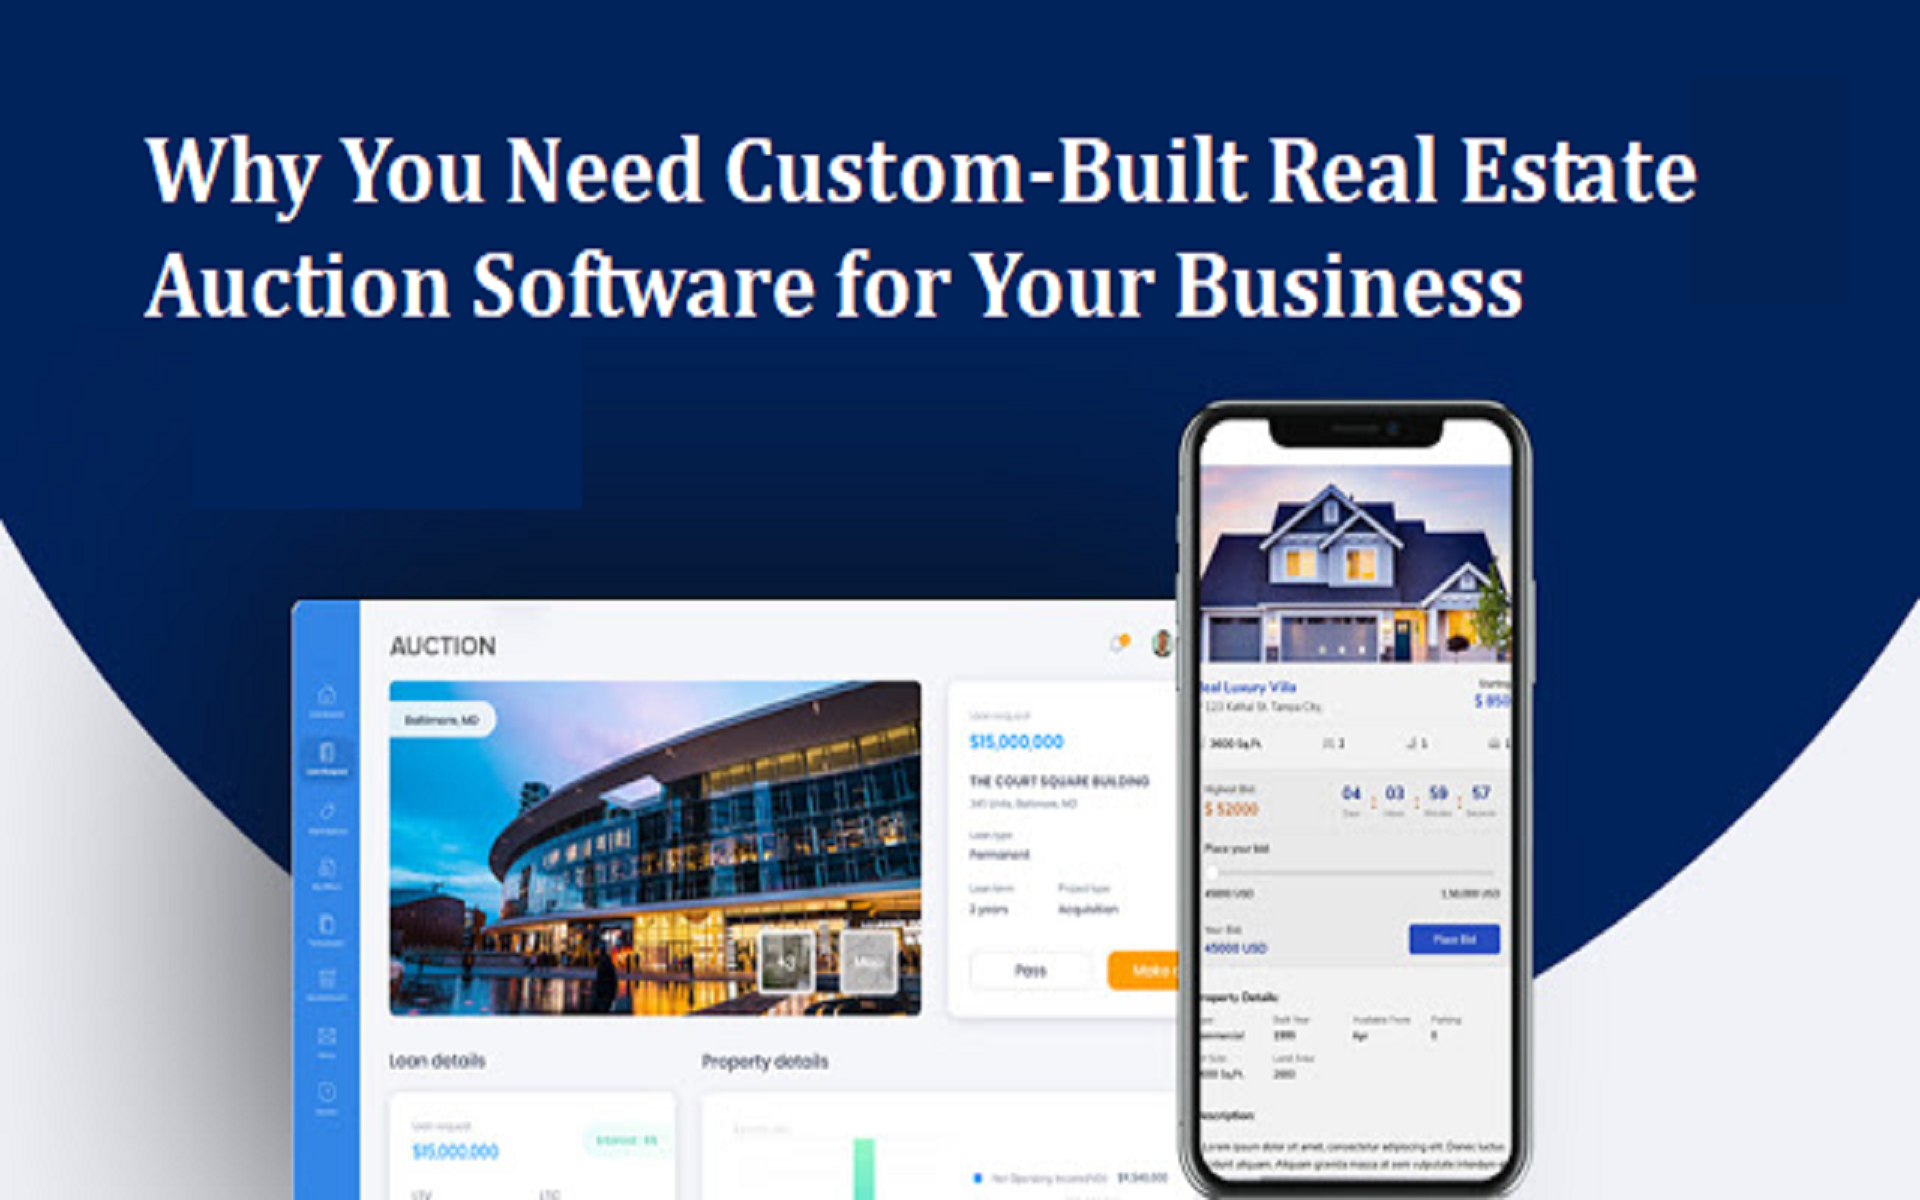 Real Estate Auction Software for Your Business